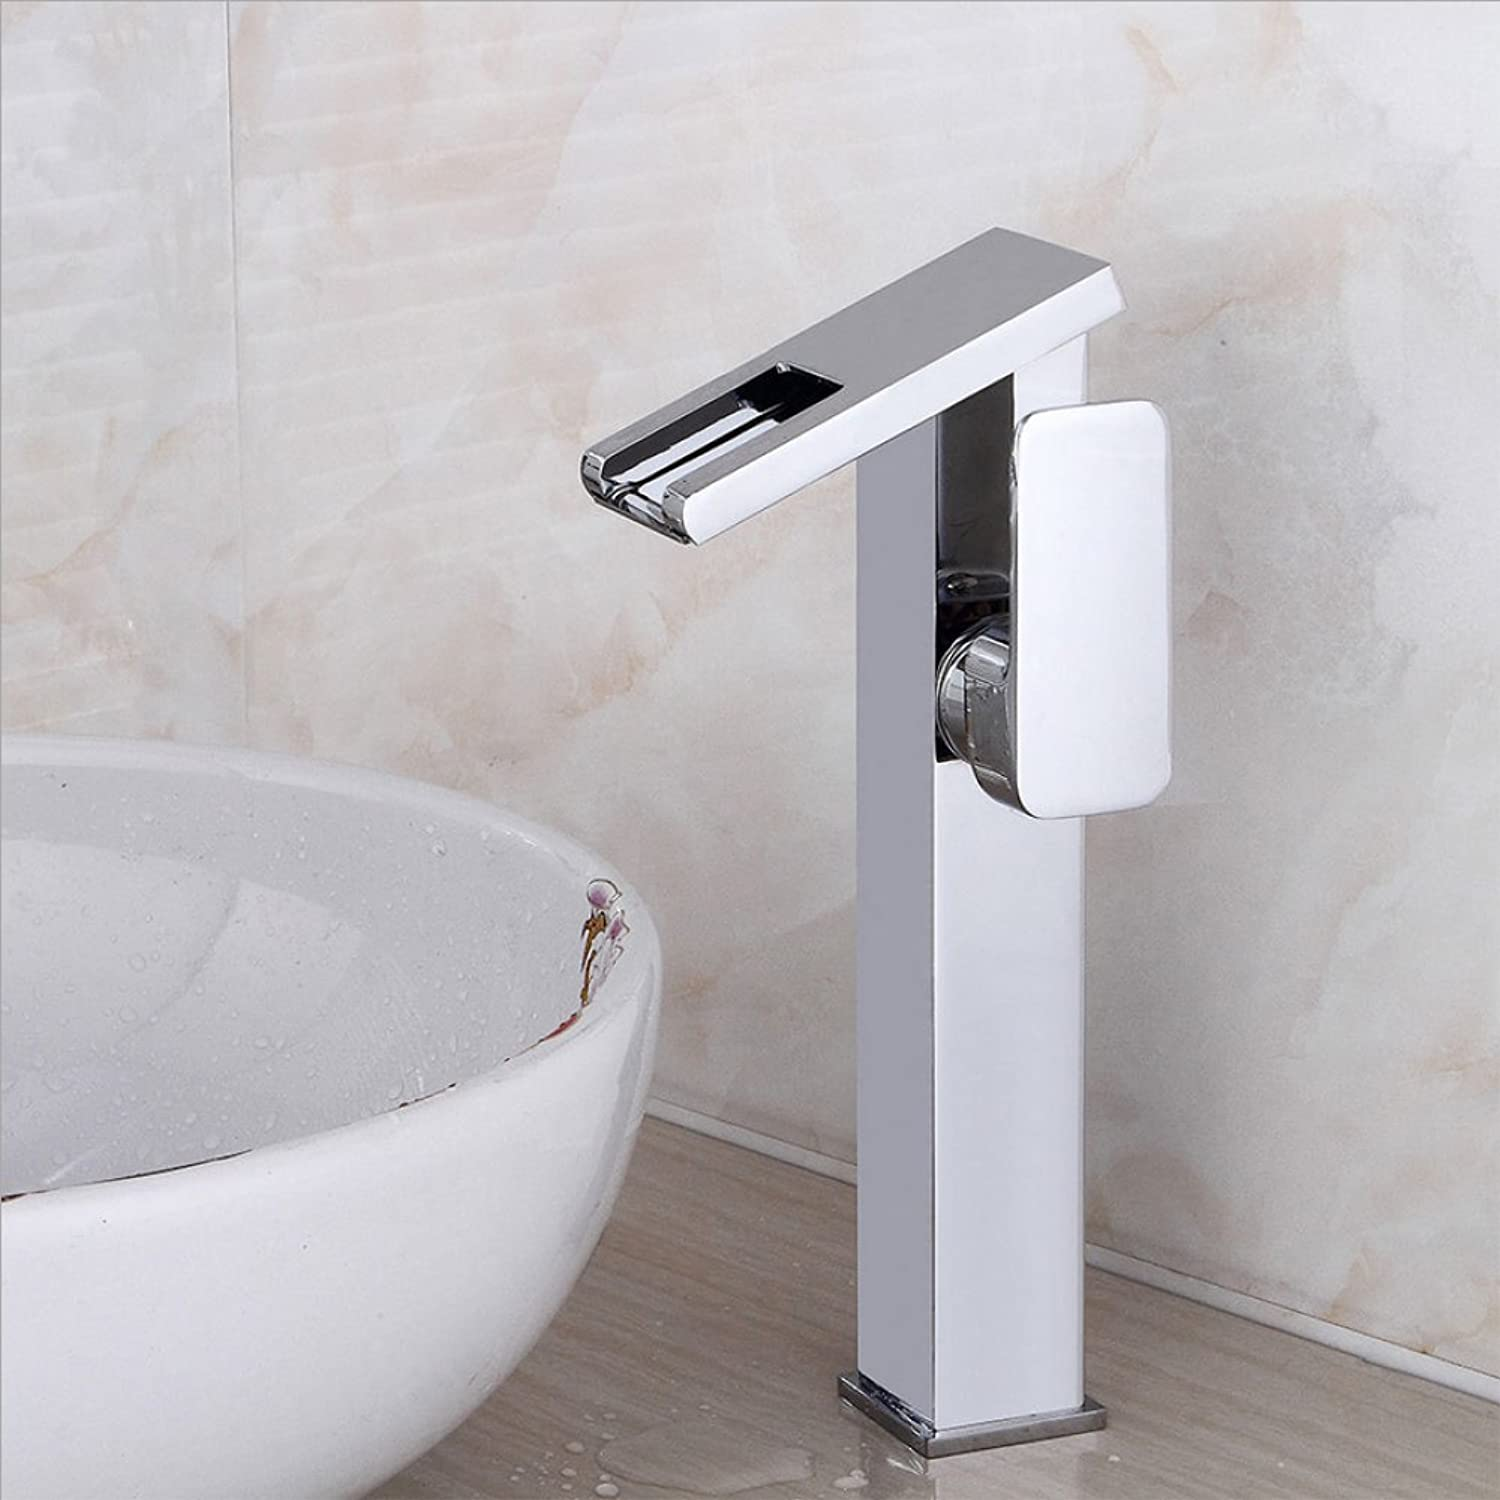 HH faucet plating basin faucet LED waterfall faucet above counter basin hot and cold faucet bathroom single-hole water faucet copper faucet mixing faucet washbasin faucet single-unit